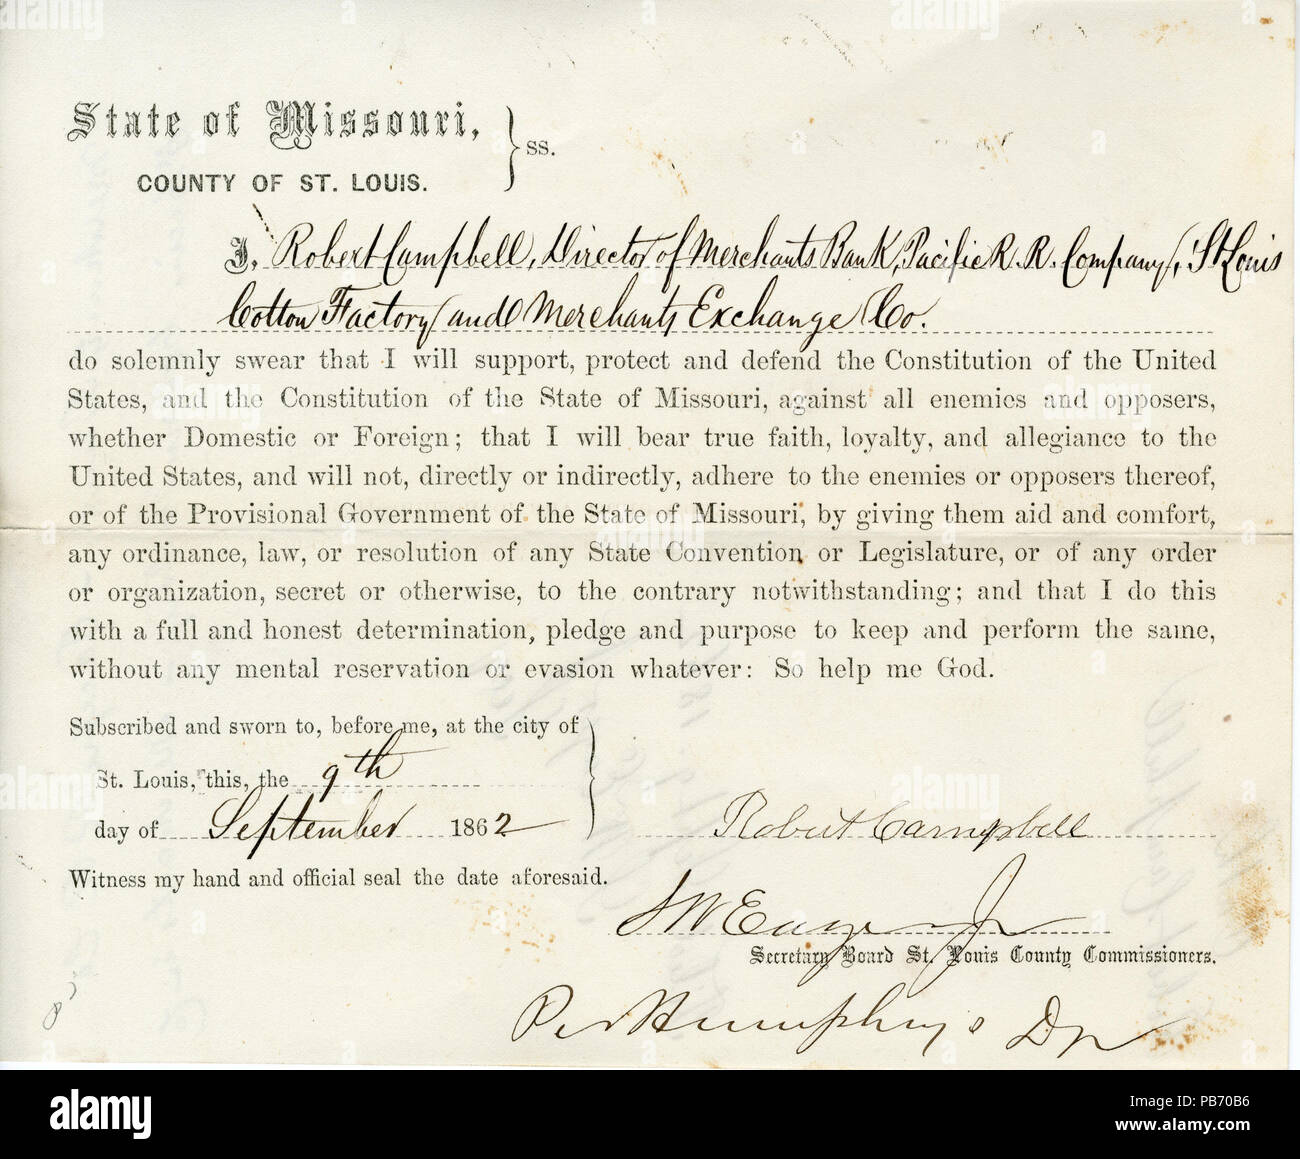 954 Loyalty oath of Robert Campbell of Missouri, County of St. Louis - Stock Image